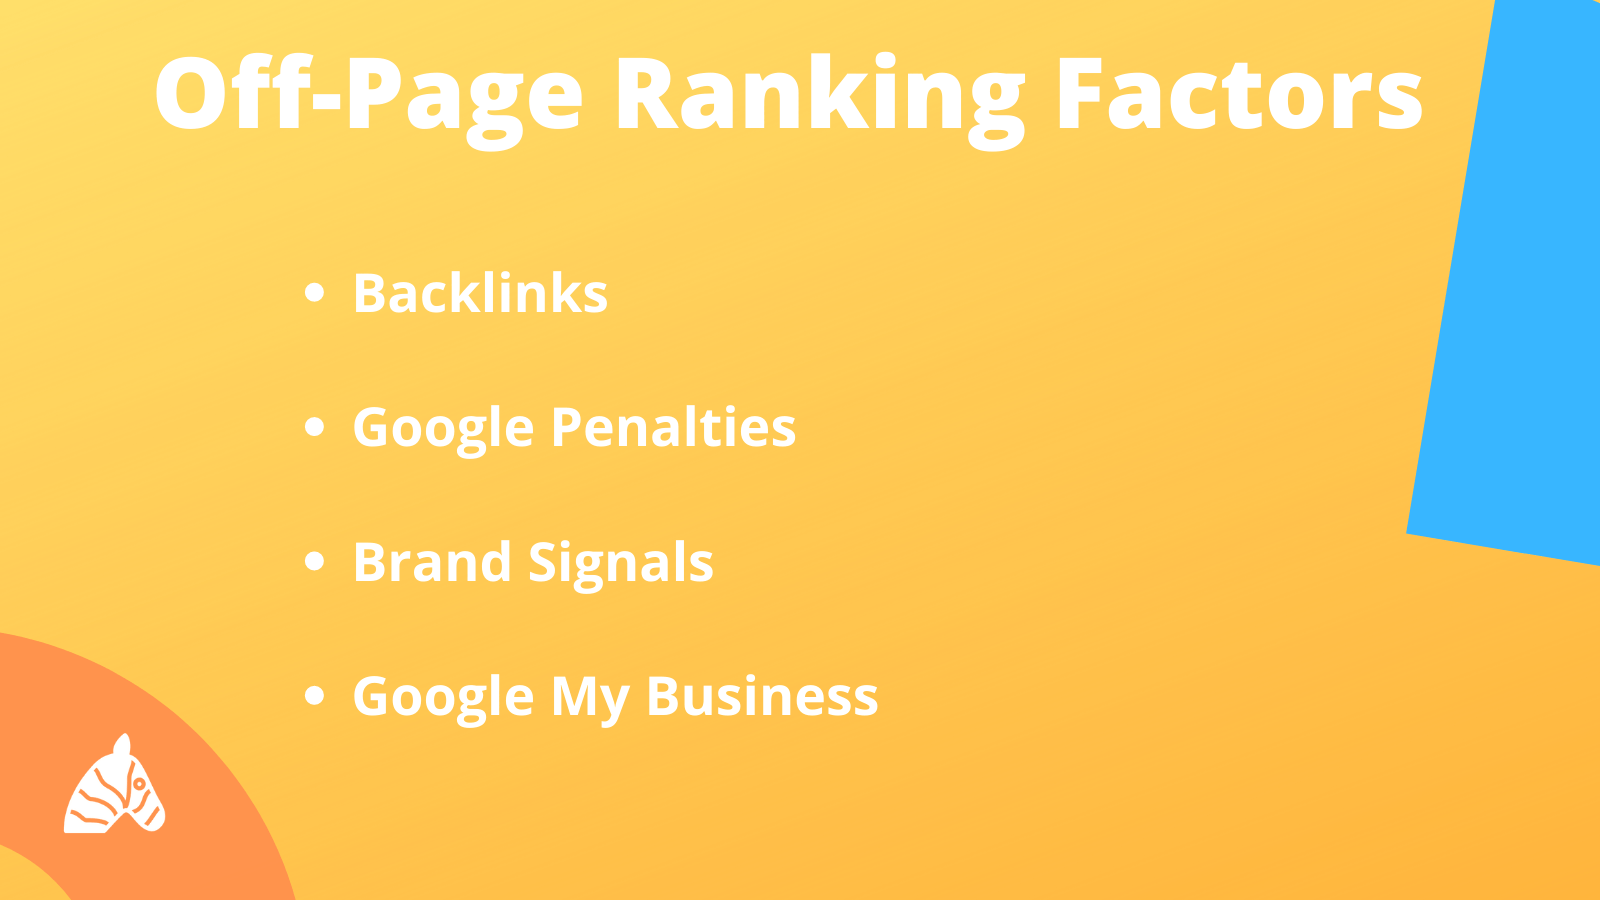 off-page ranking factors